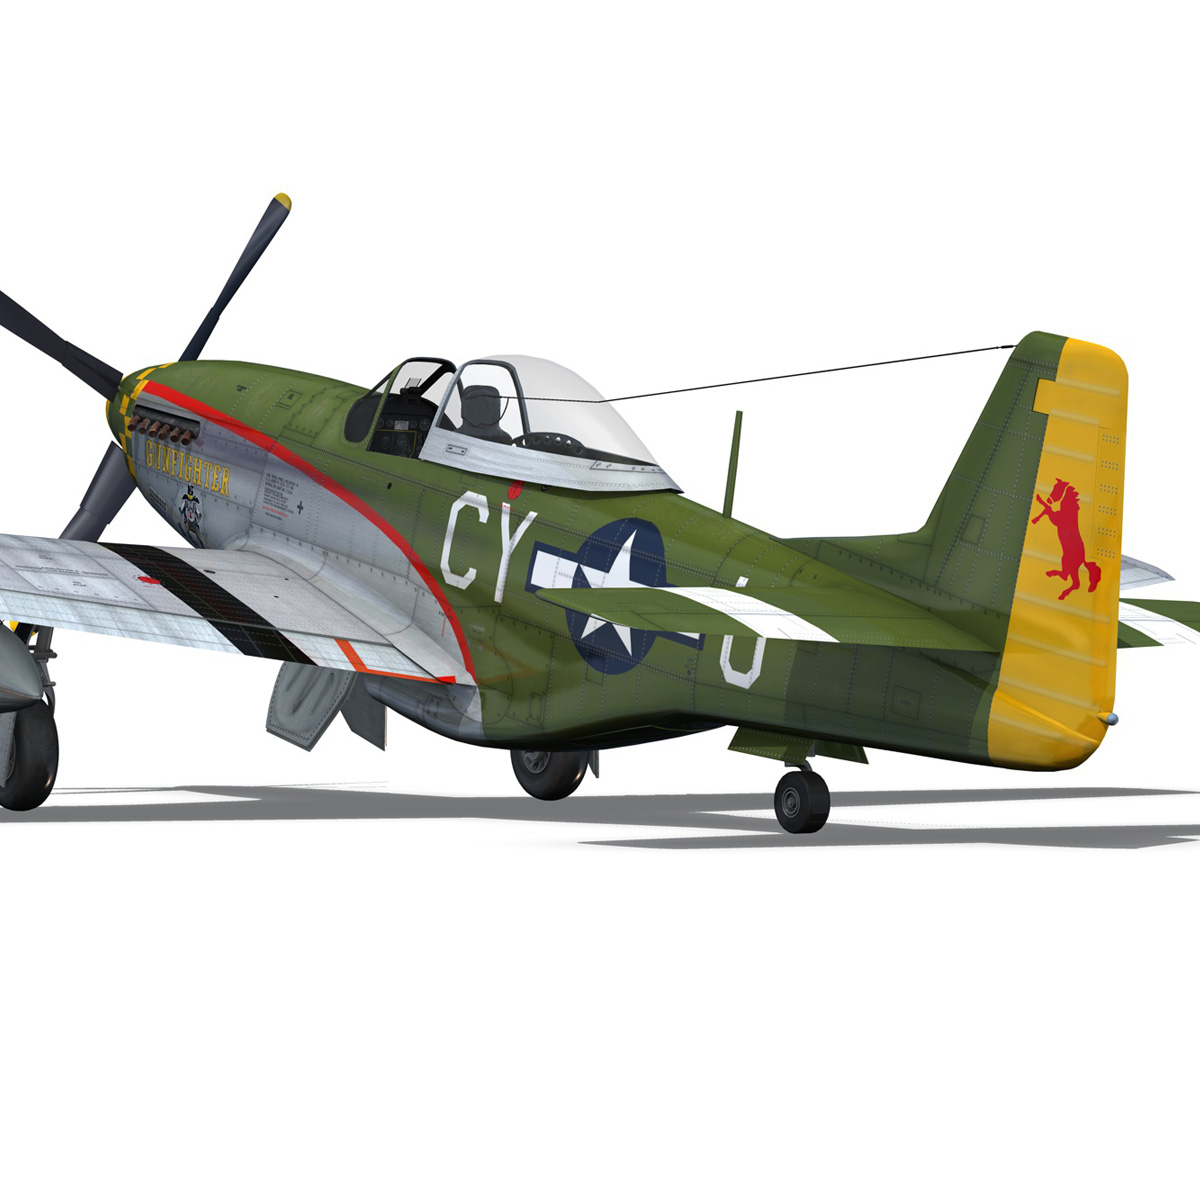 north american p-51d mustang – gunfighter 3d model fbx c4d lwo obj 269580